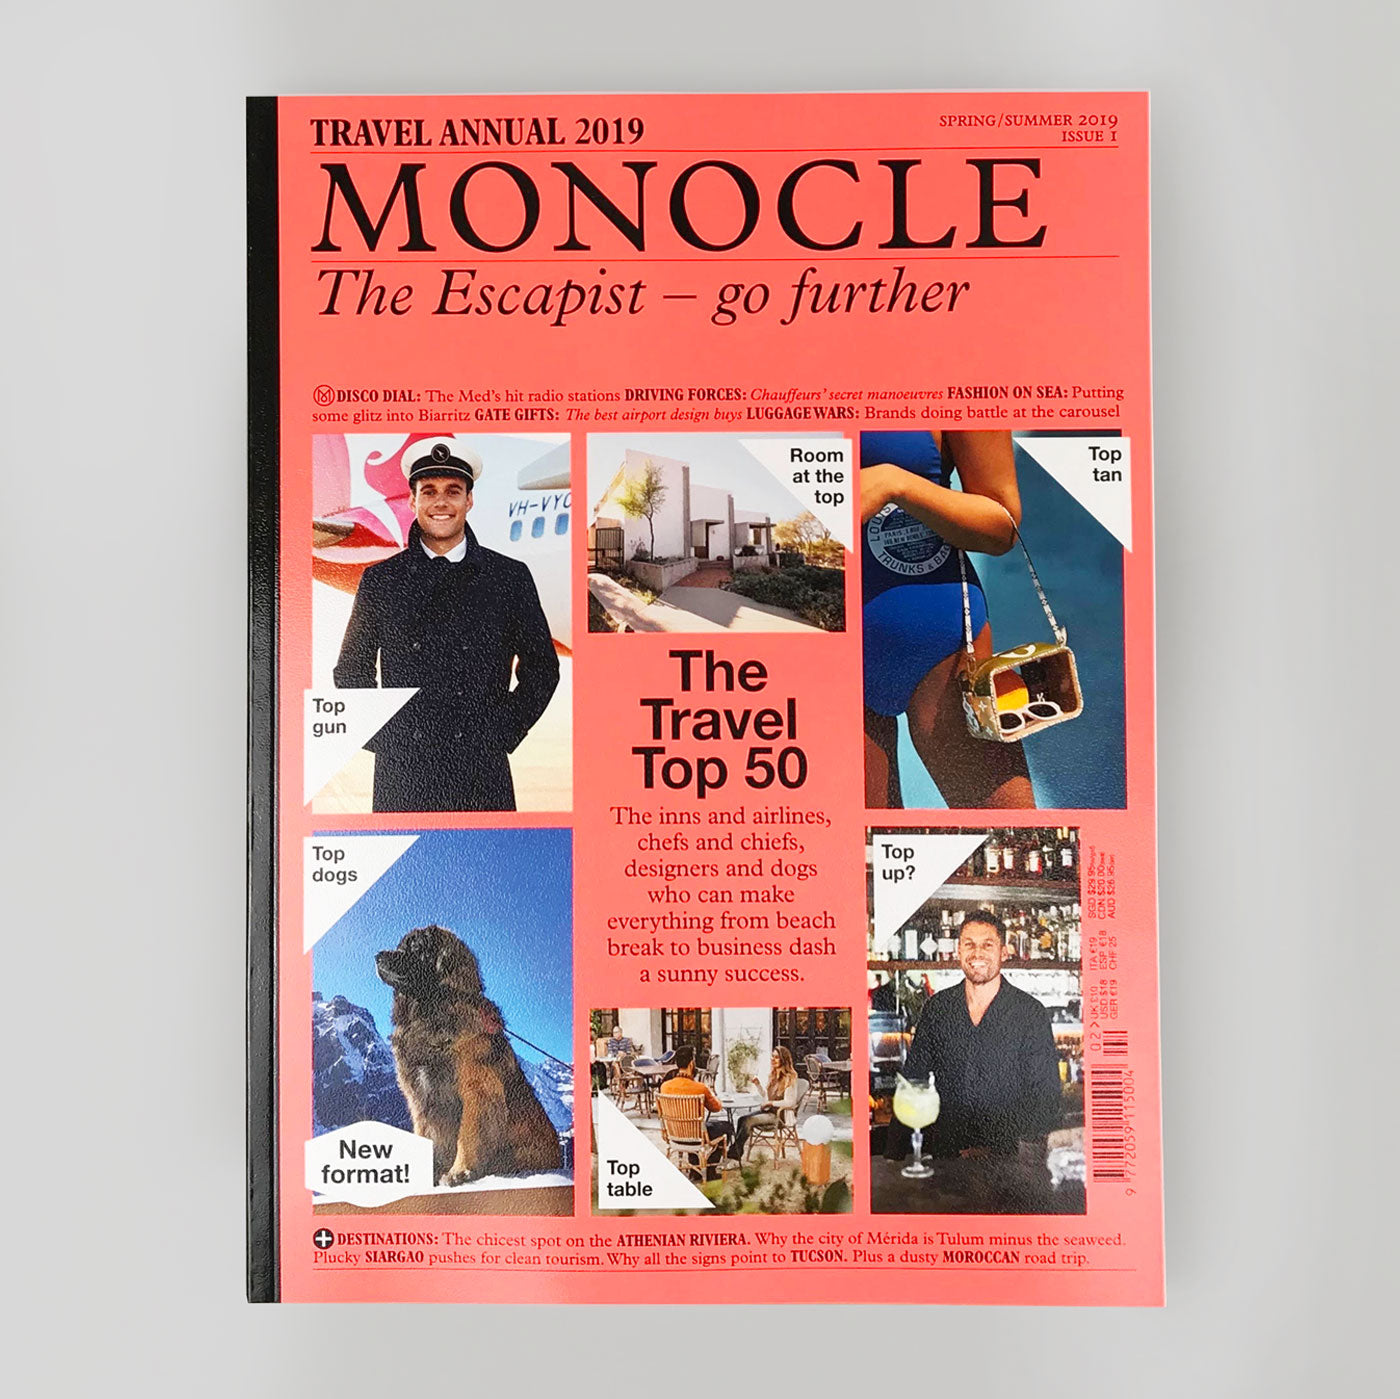 The Escapist - Monocle Travel Annual 2019 - Colours May Vary